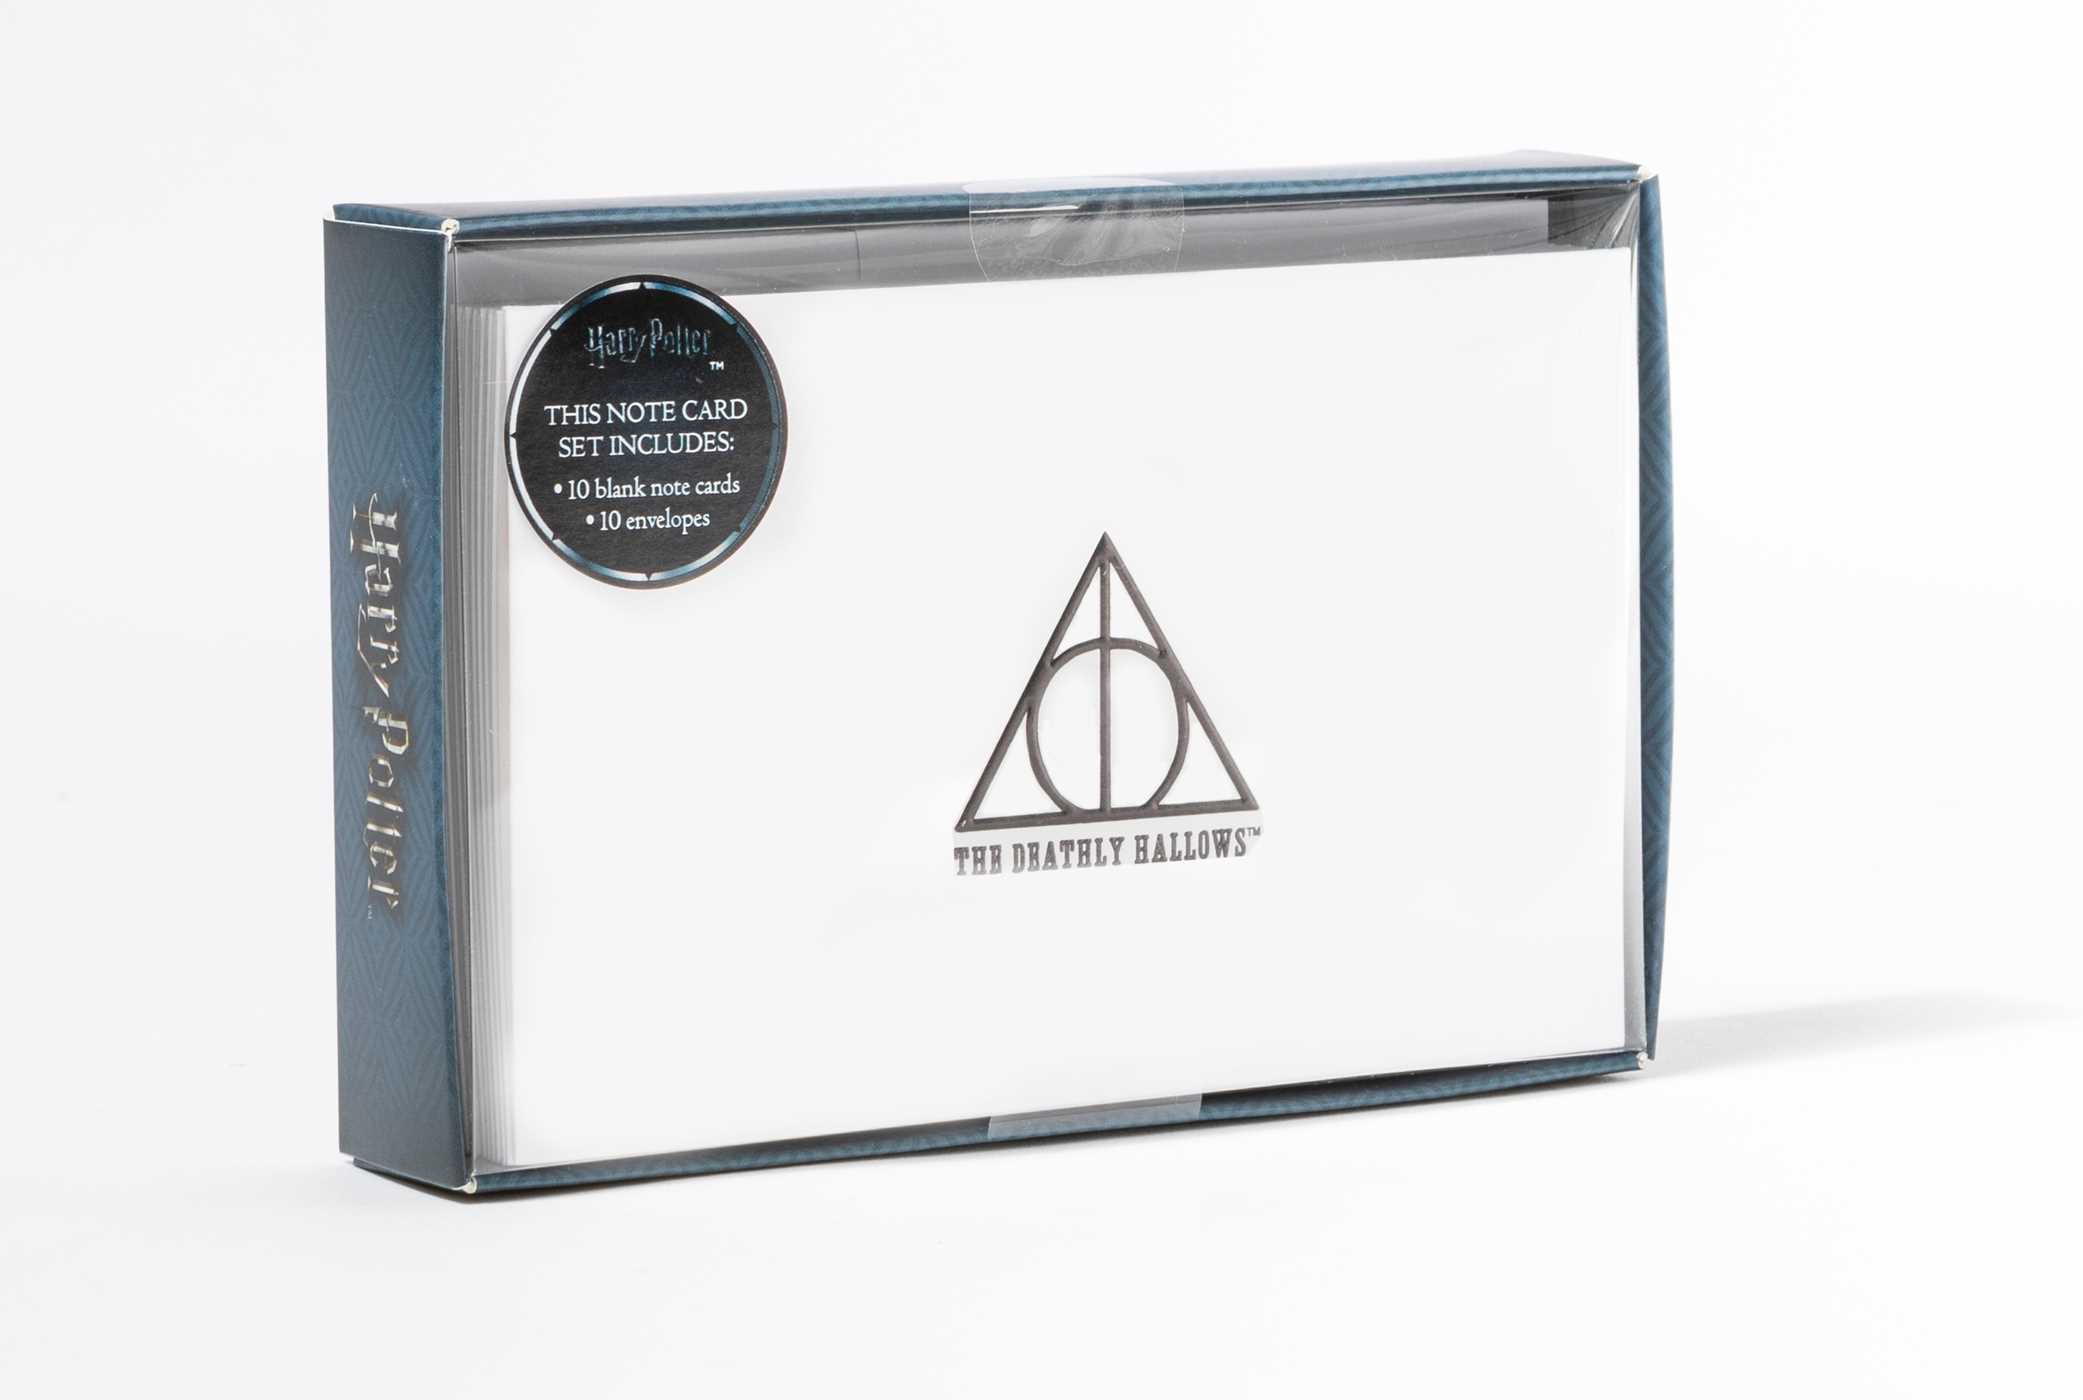 Harry potter deathly hallows foil note cards set of 10 9781683832911 hr